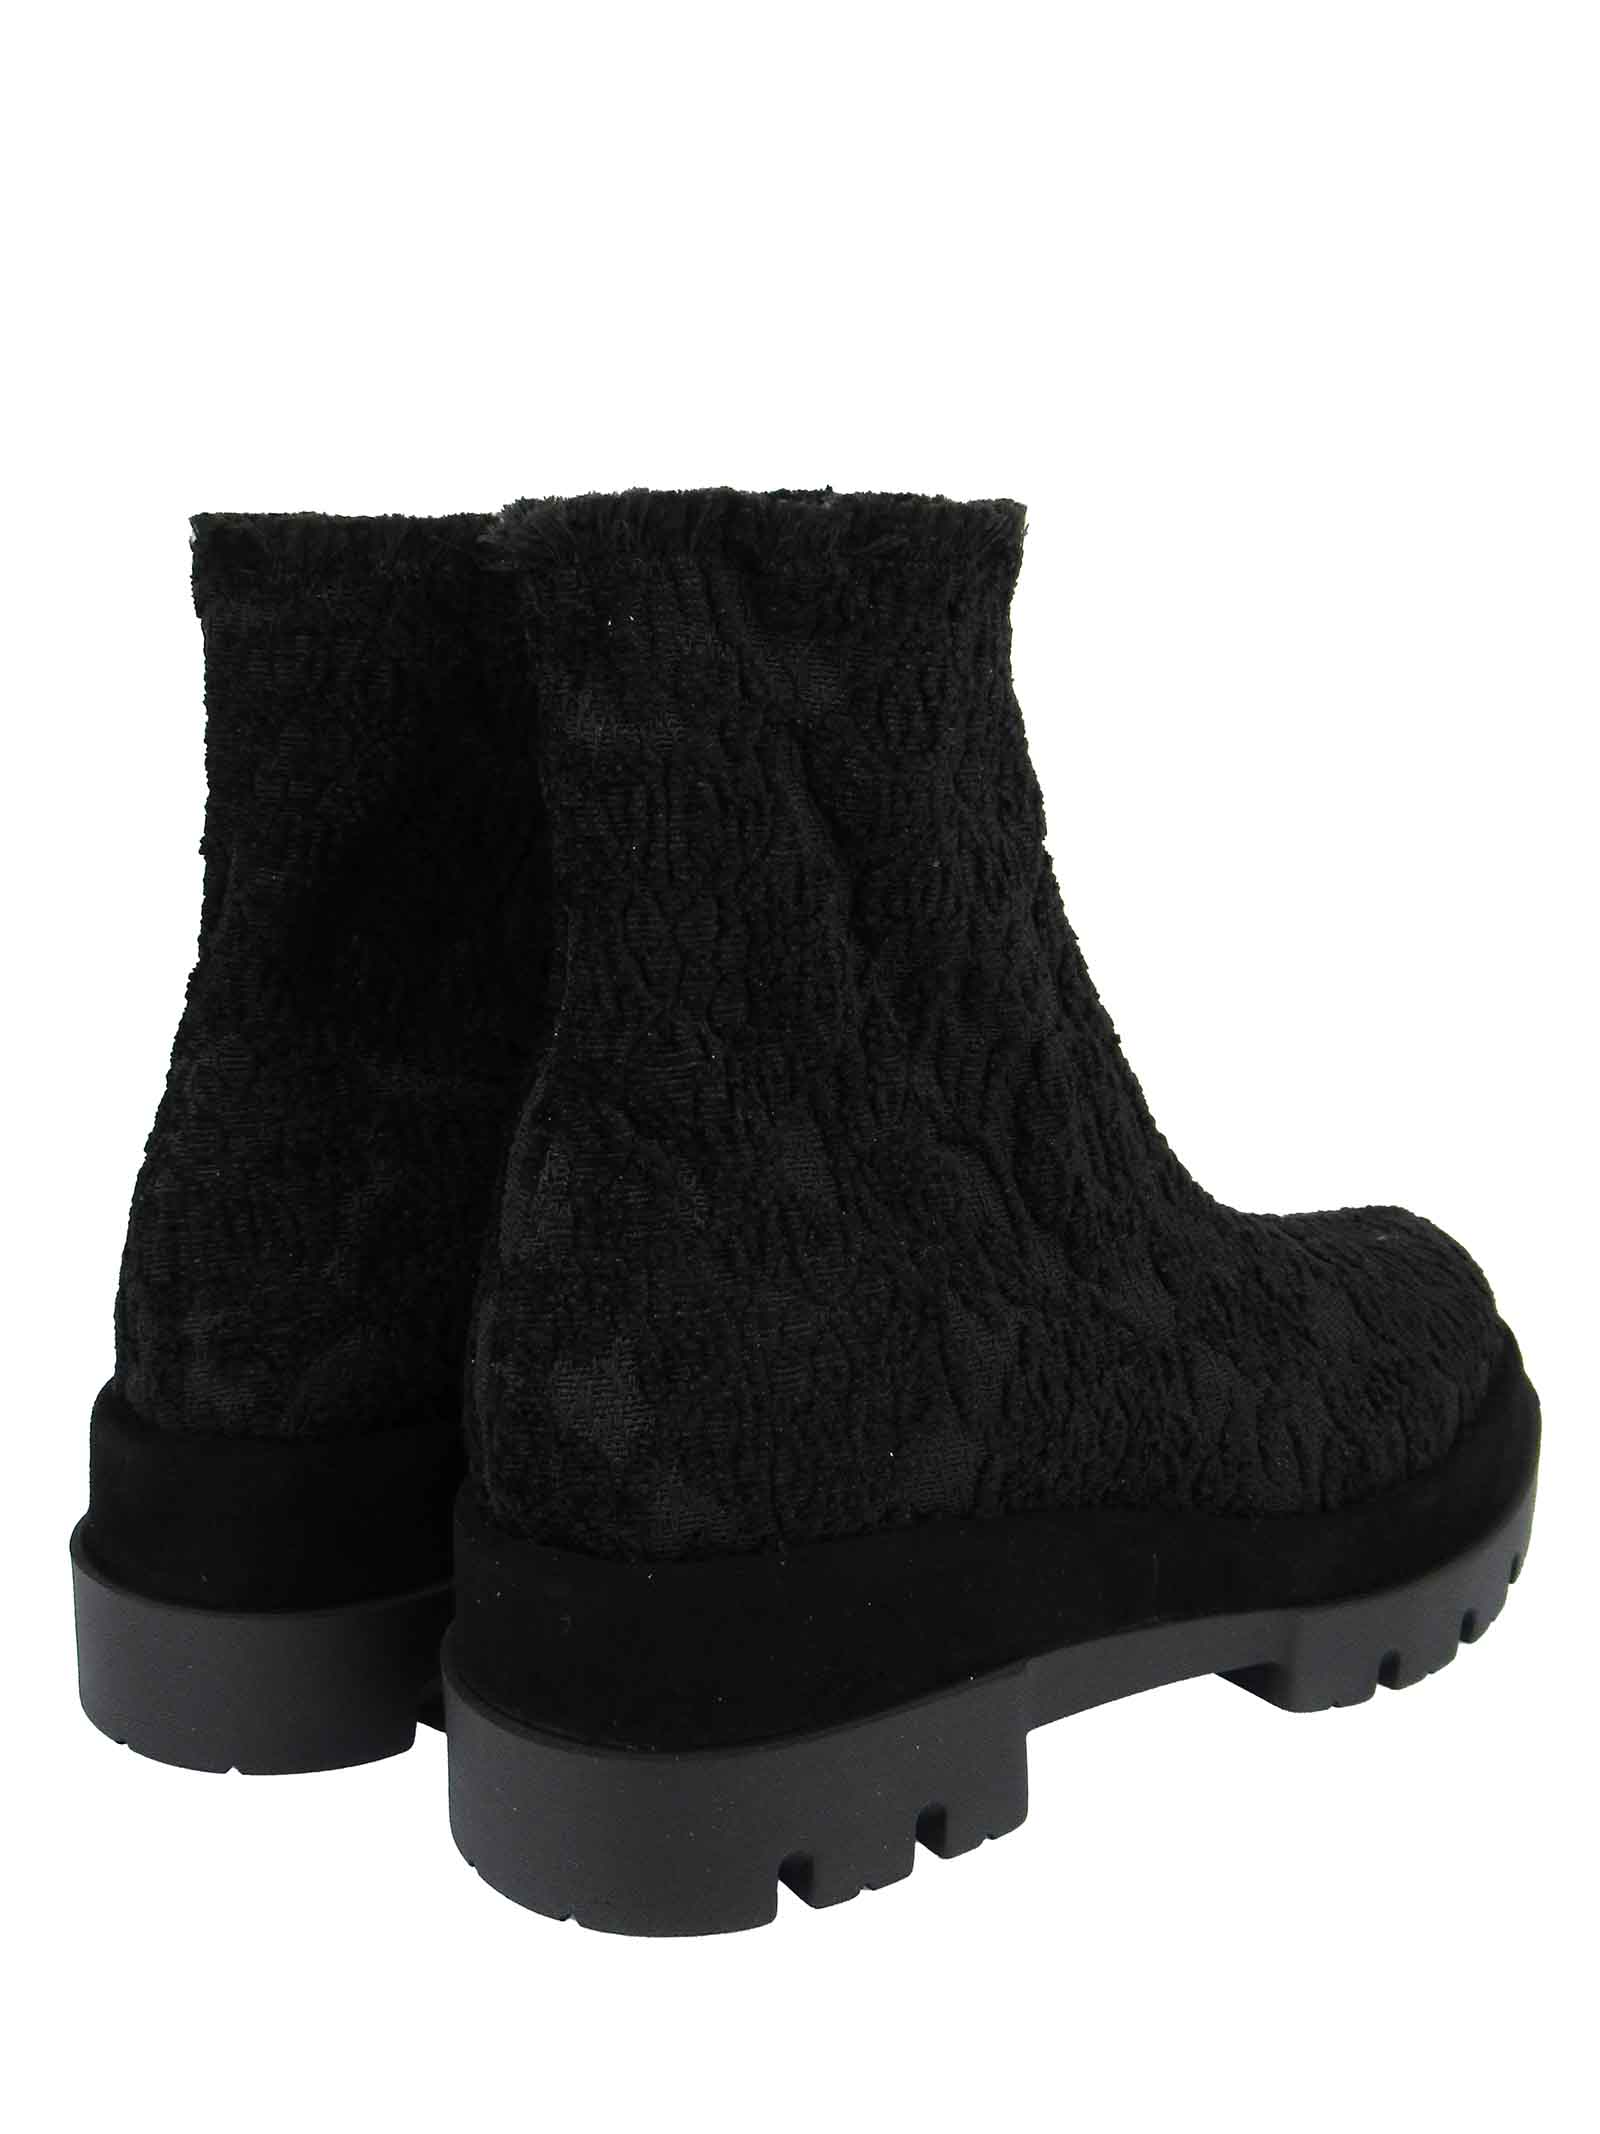 Women's Shoes Ankle Boots in Black Jacquard Elasticized Fabric with Rubber Wedge Tank Sole Le Babe   Ankle Boots   313001